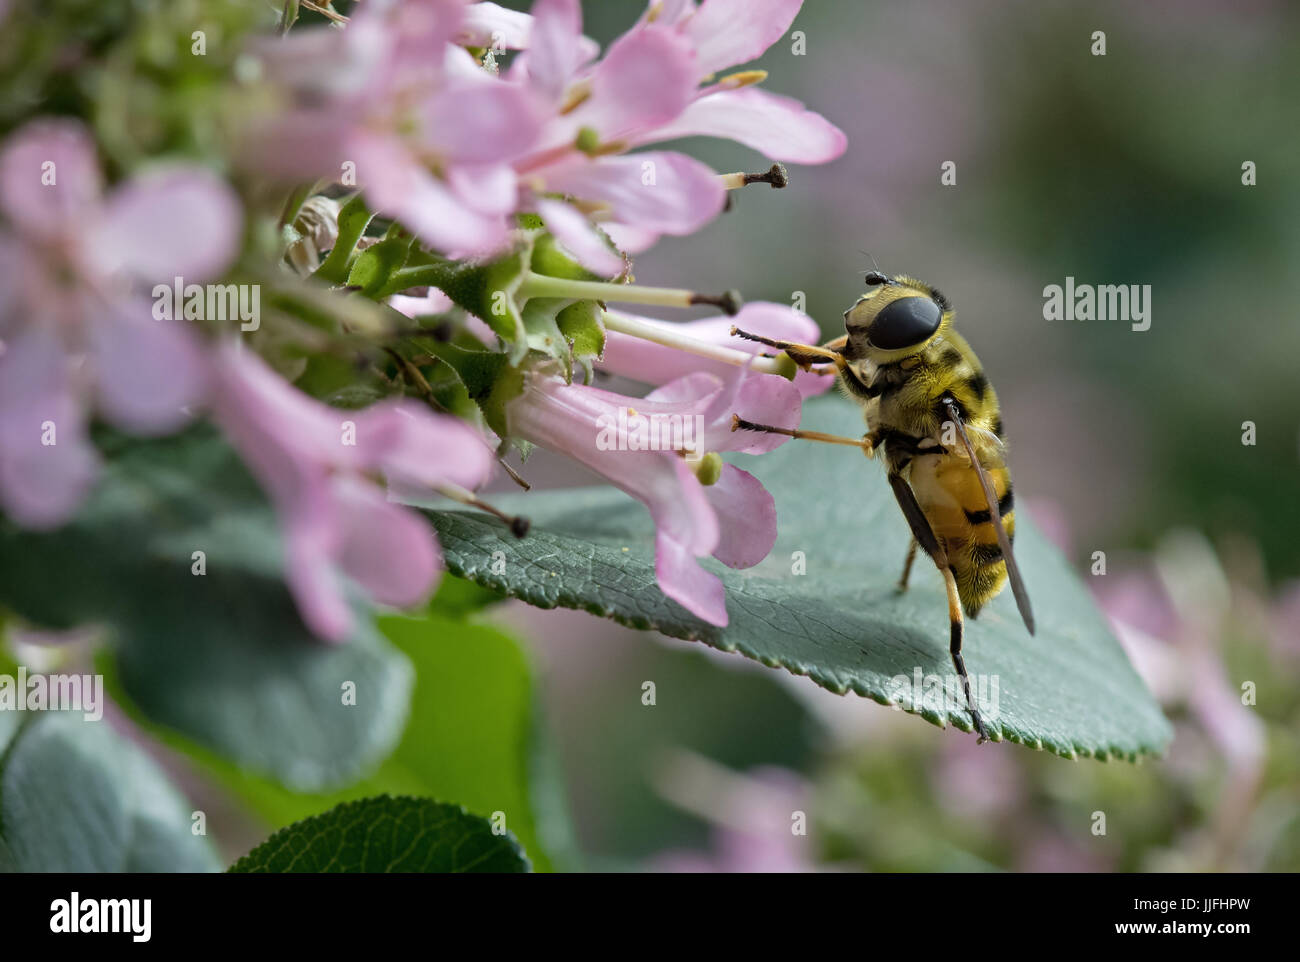 Hoverfly nectaring on Escallonia 'Pink Elle'. Uk - Stock Image